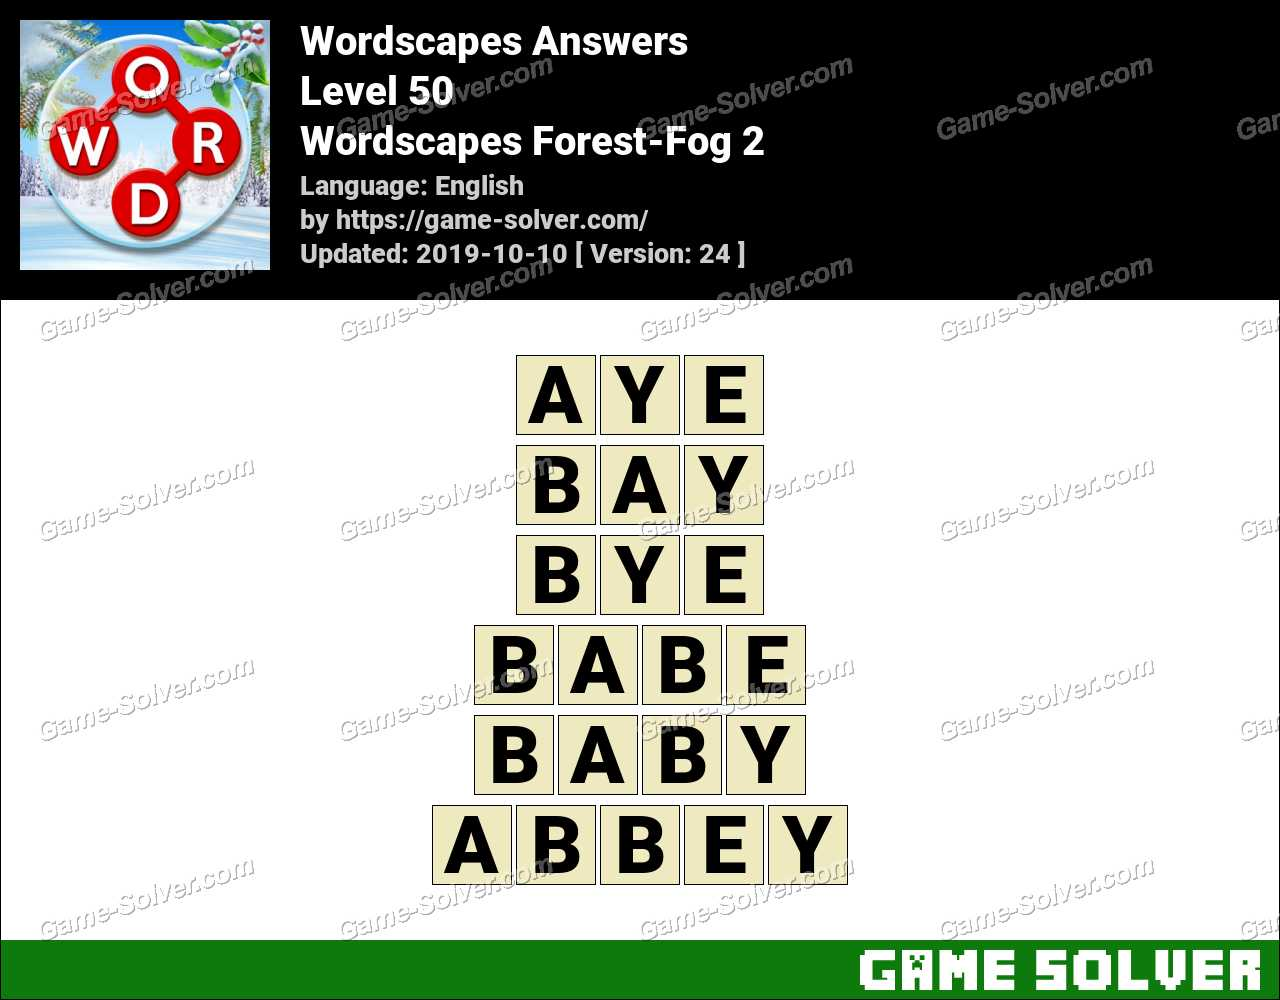 Wordscapes Forest-Fog 2 Answers